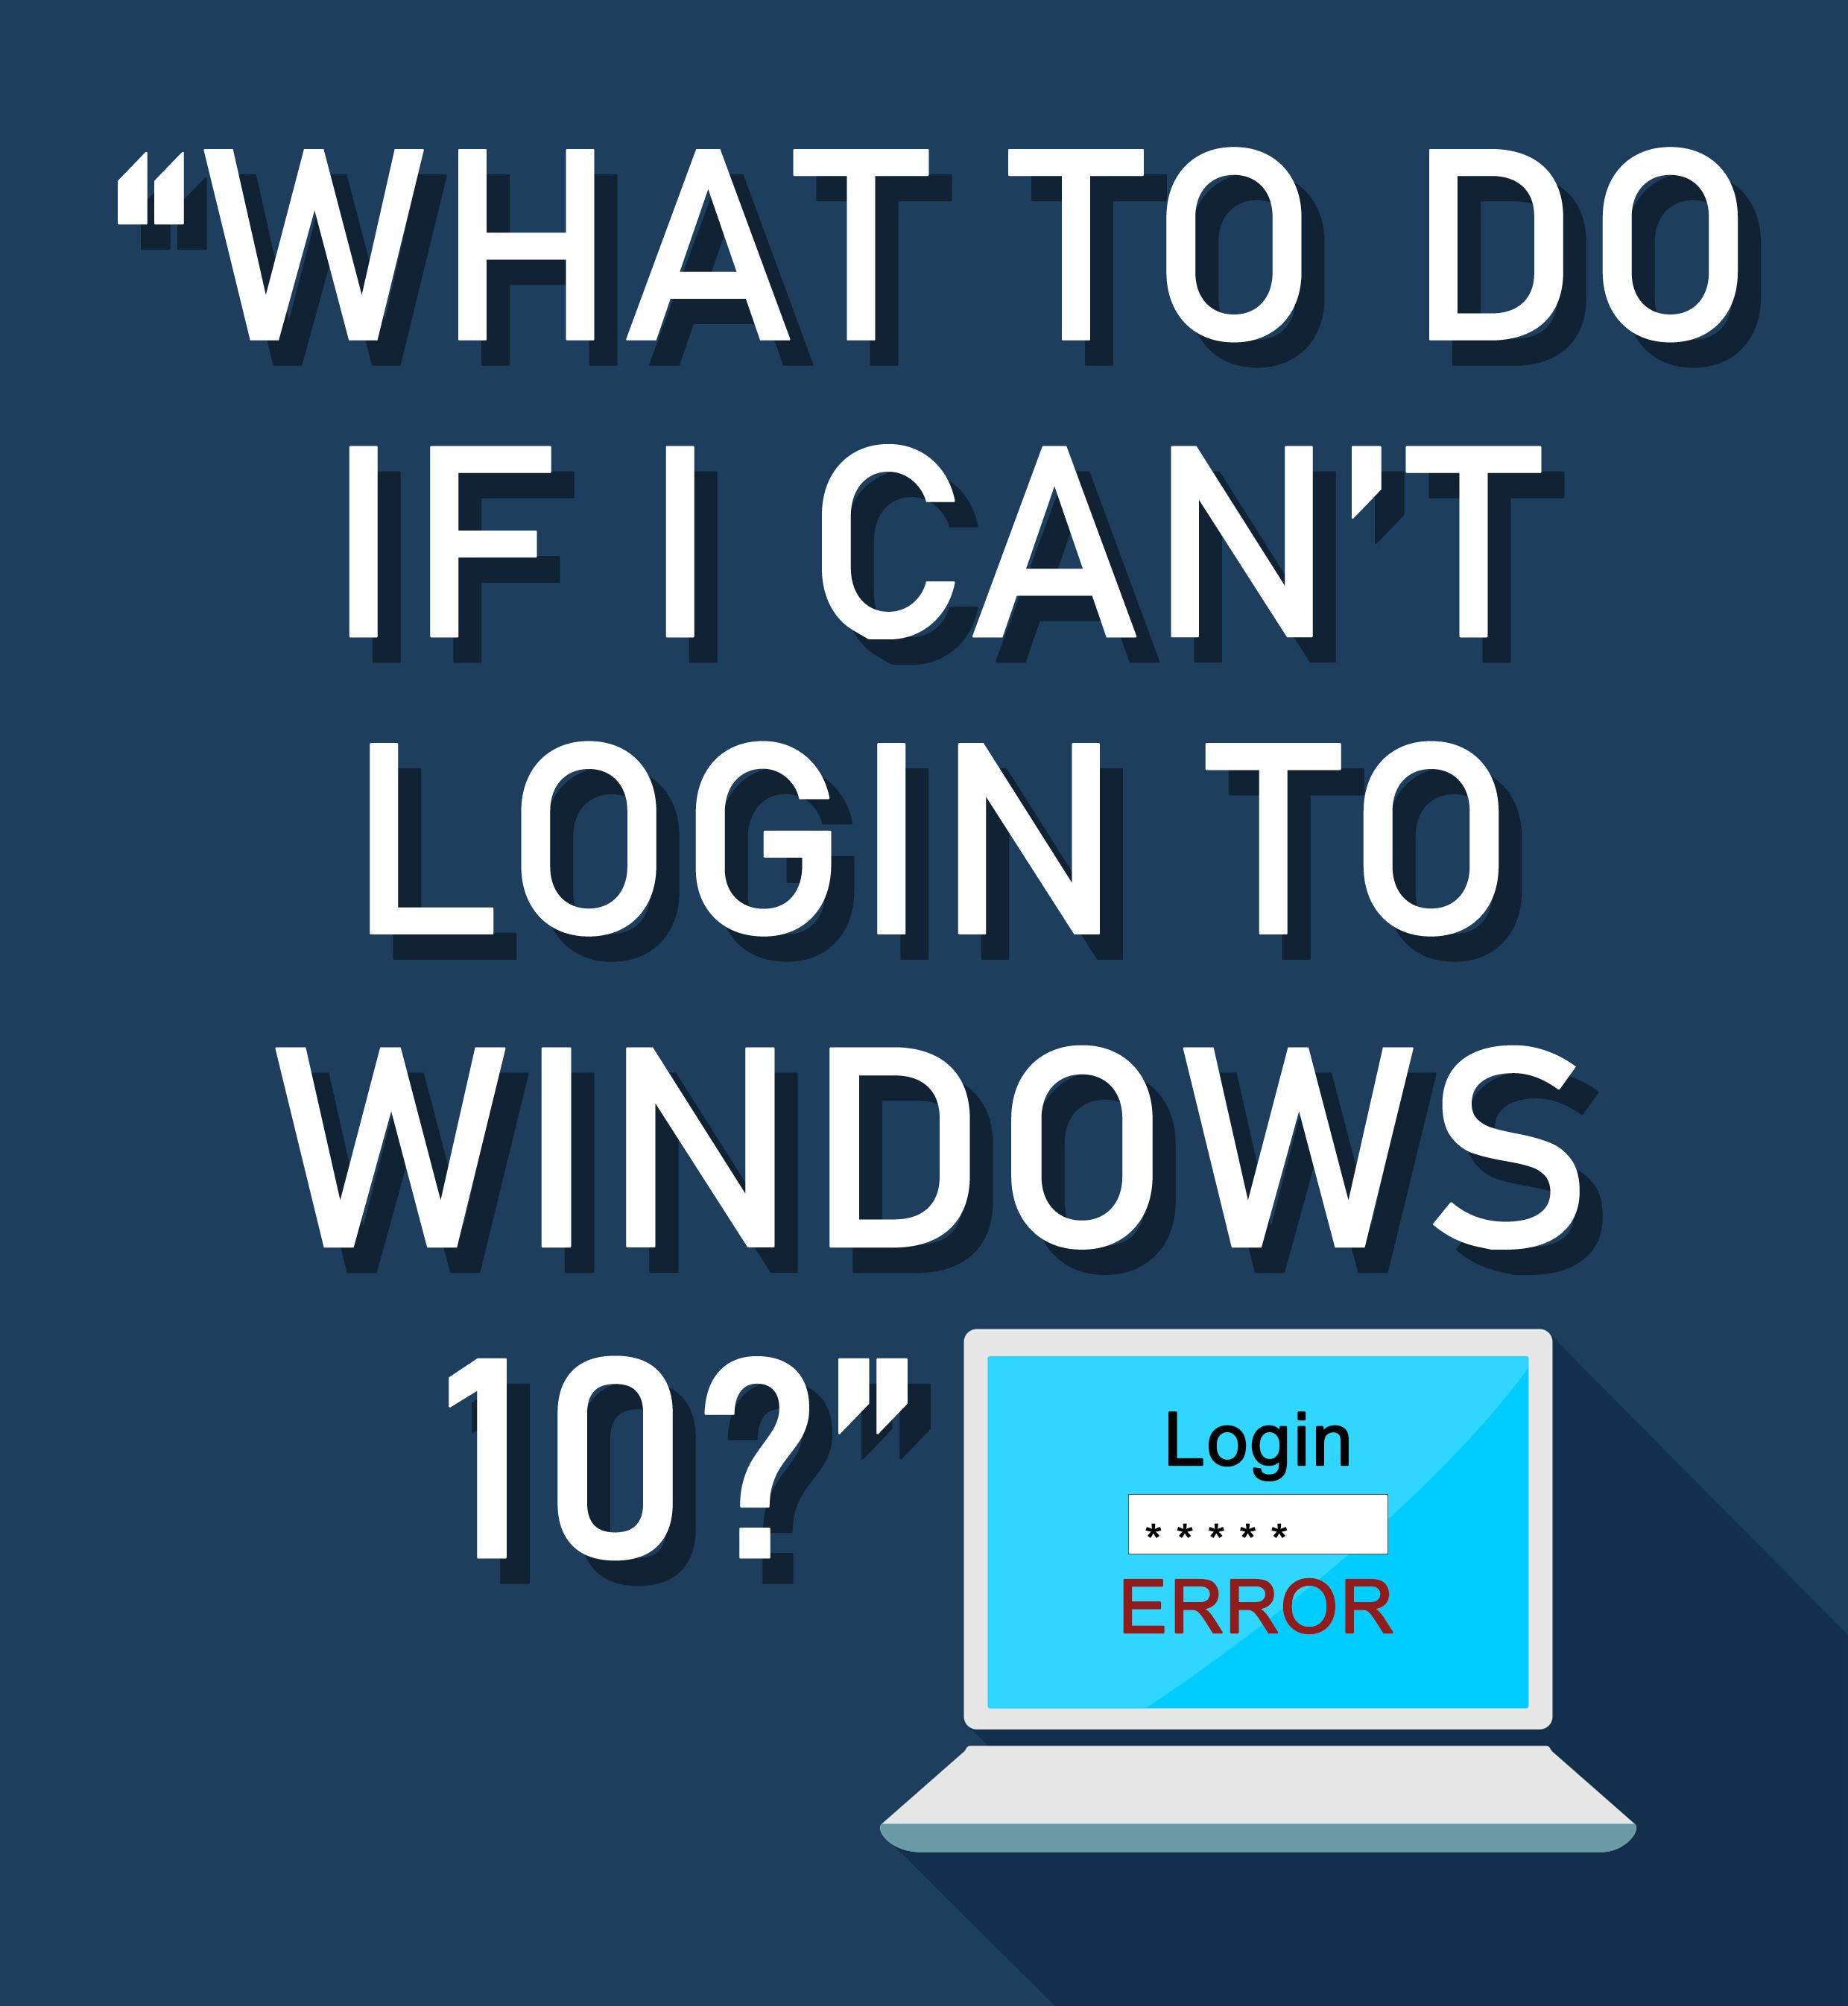 What To Do If I Can't Login To Windows 10?